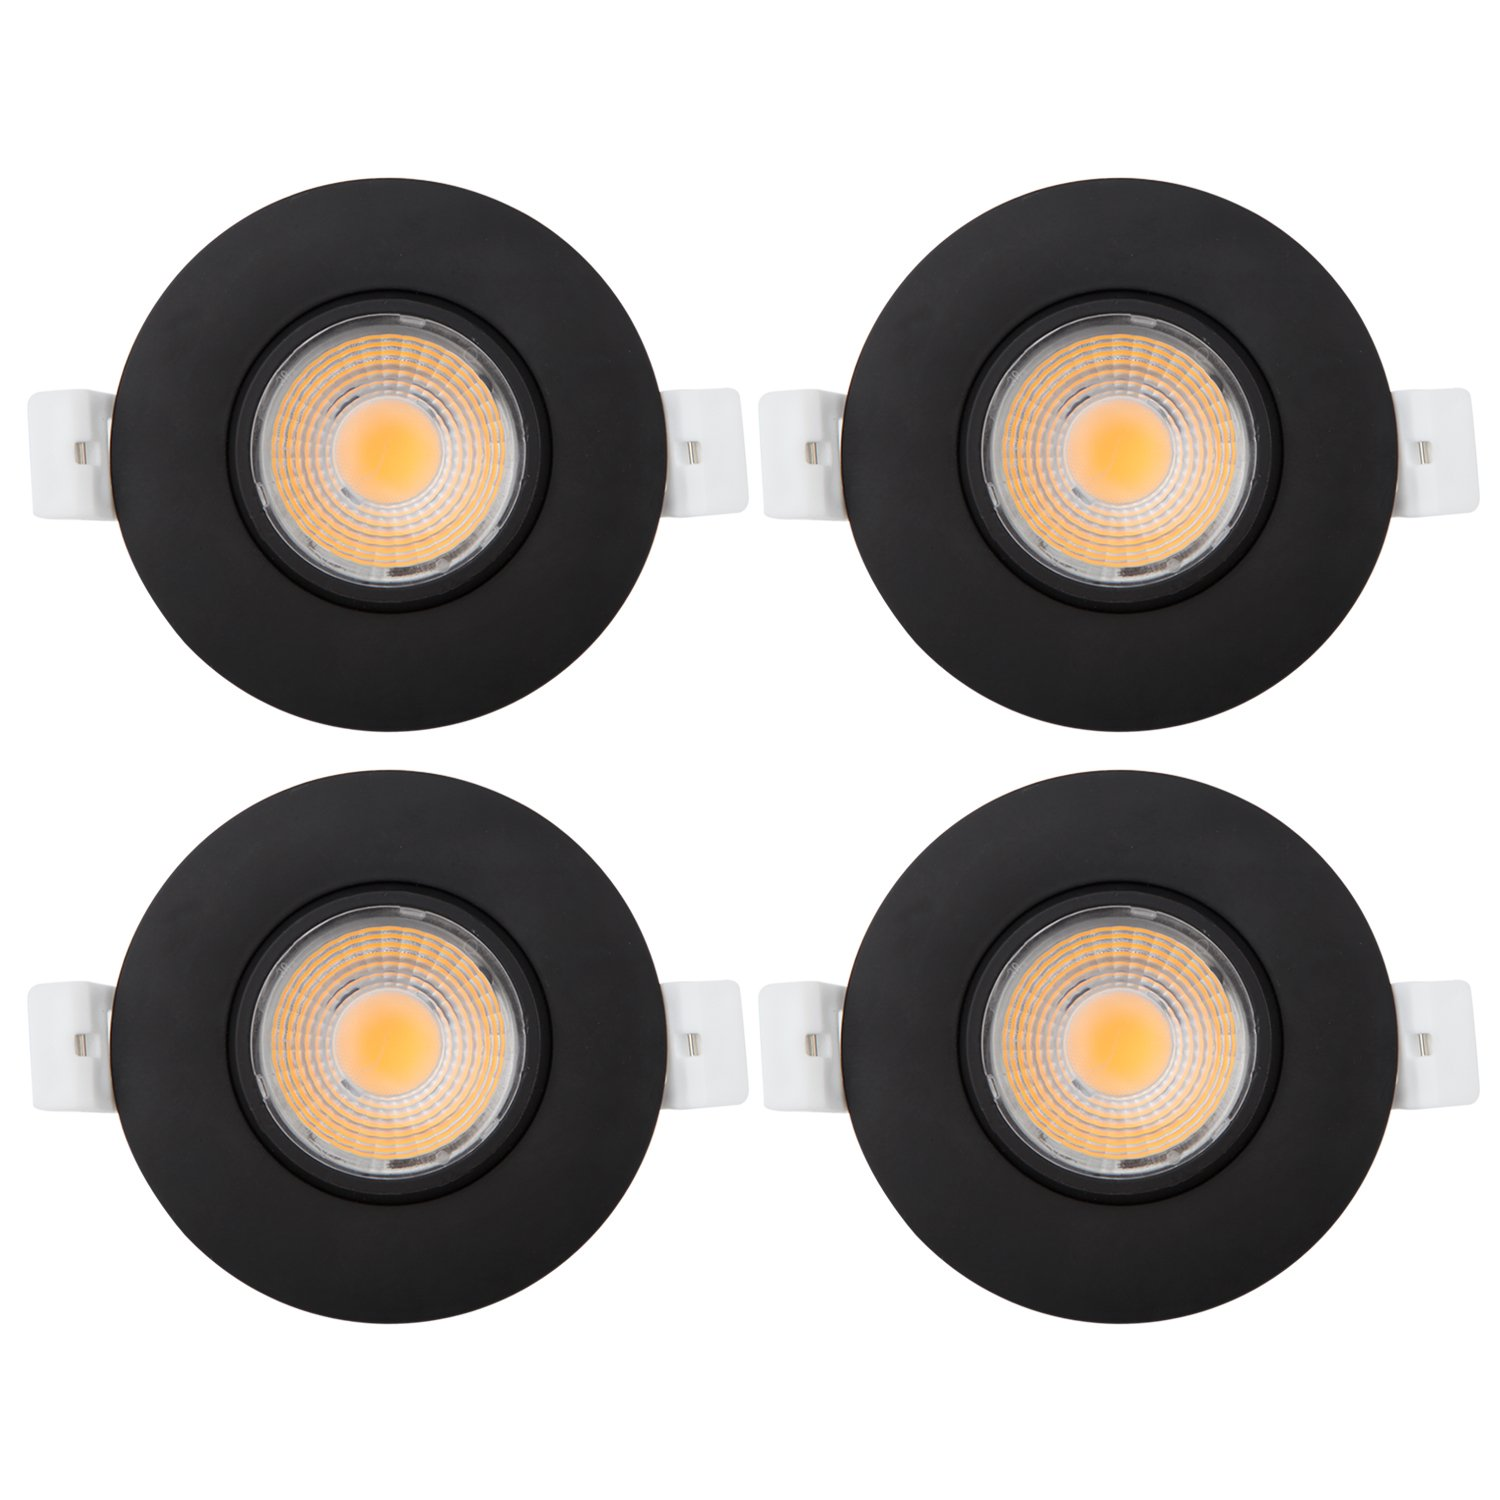 4Pack 2700K Soft Warm White, Black Led Gimbal Light 3 Inch 8W 700 Lumens IC Rated Gimbal Adjustable Recessed LED Downlight Energy Star ETL Approved